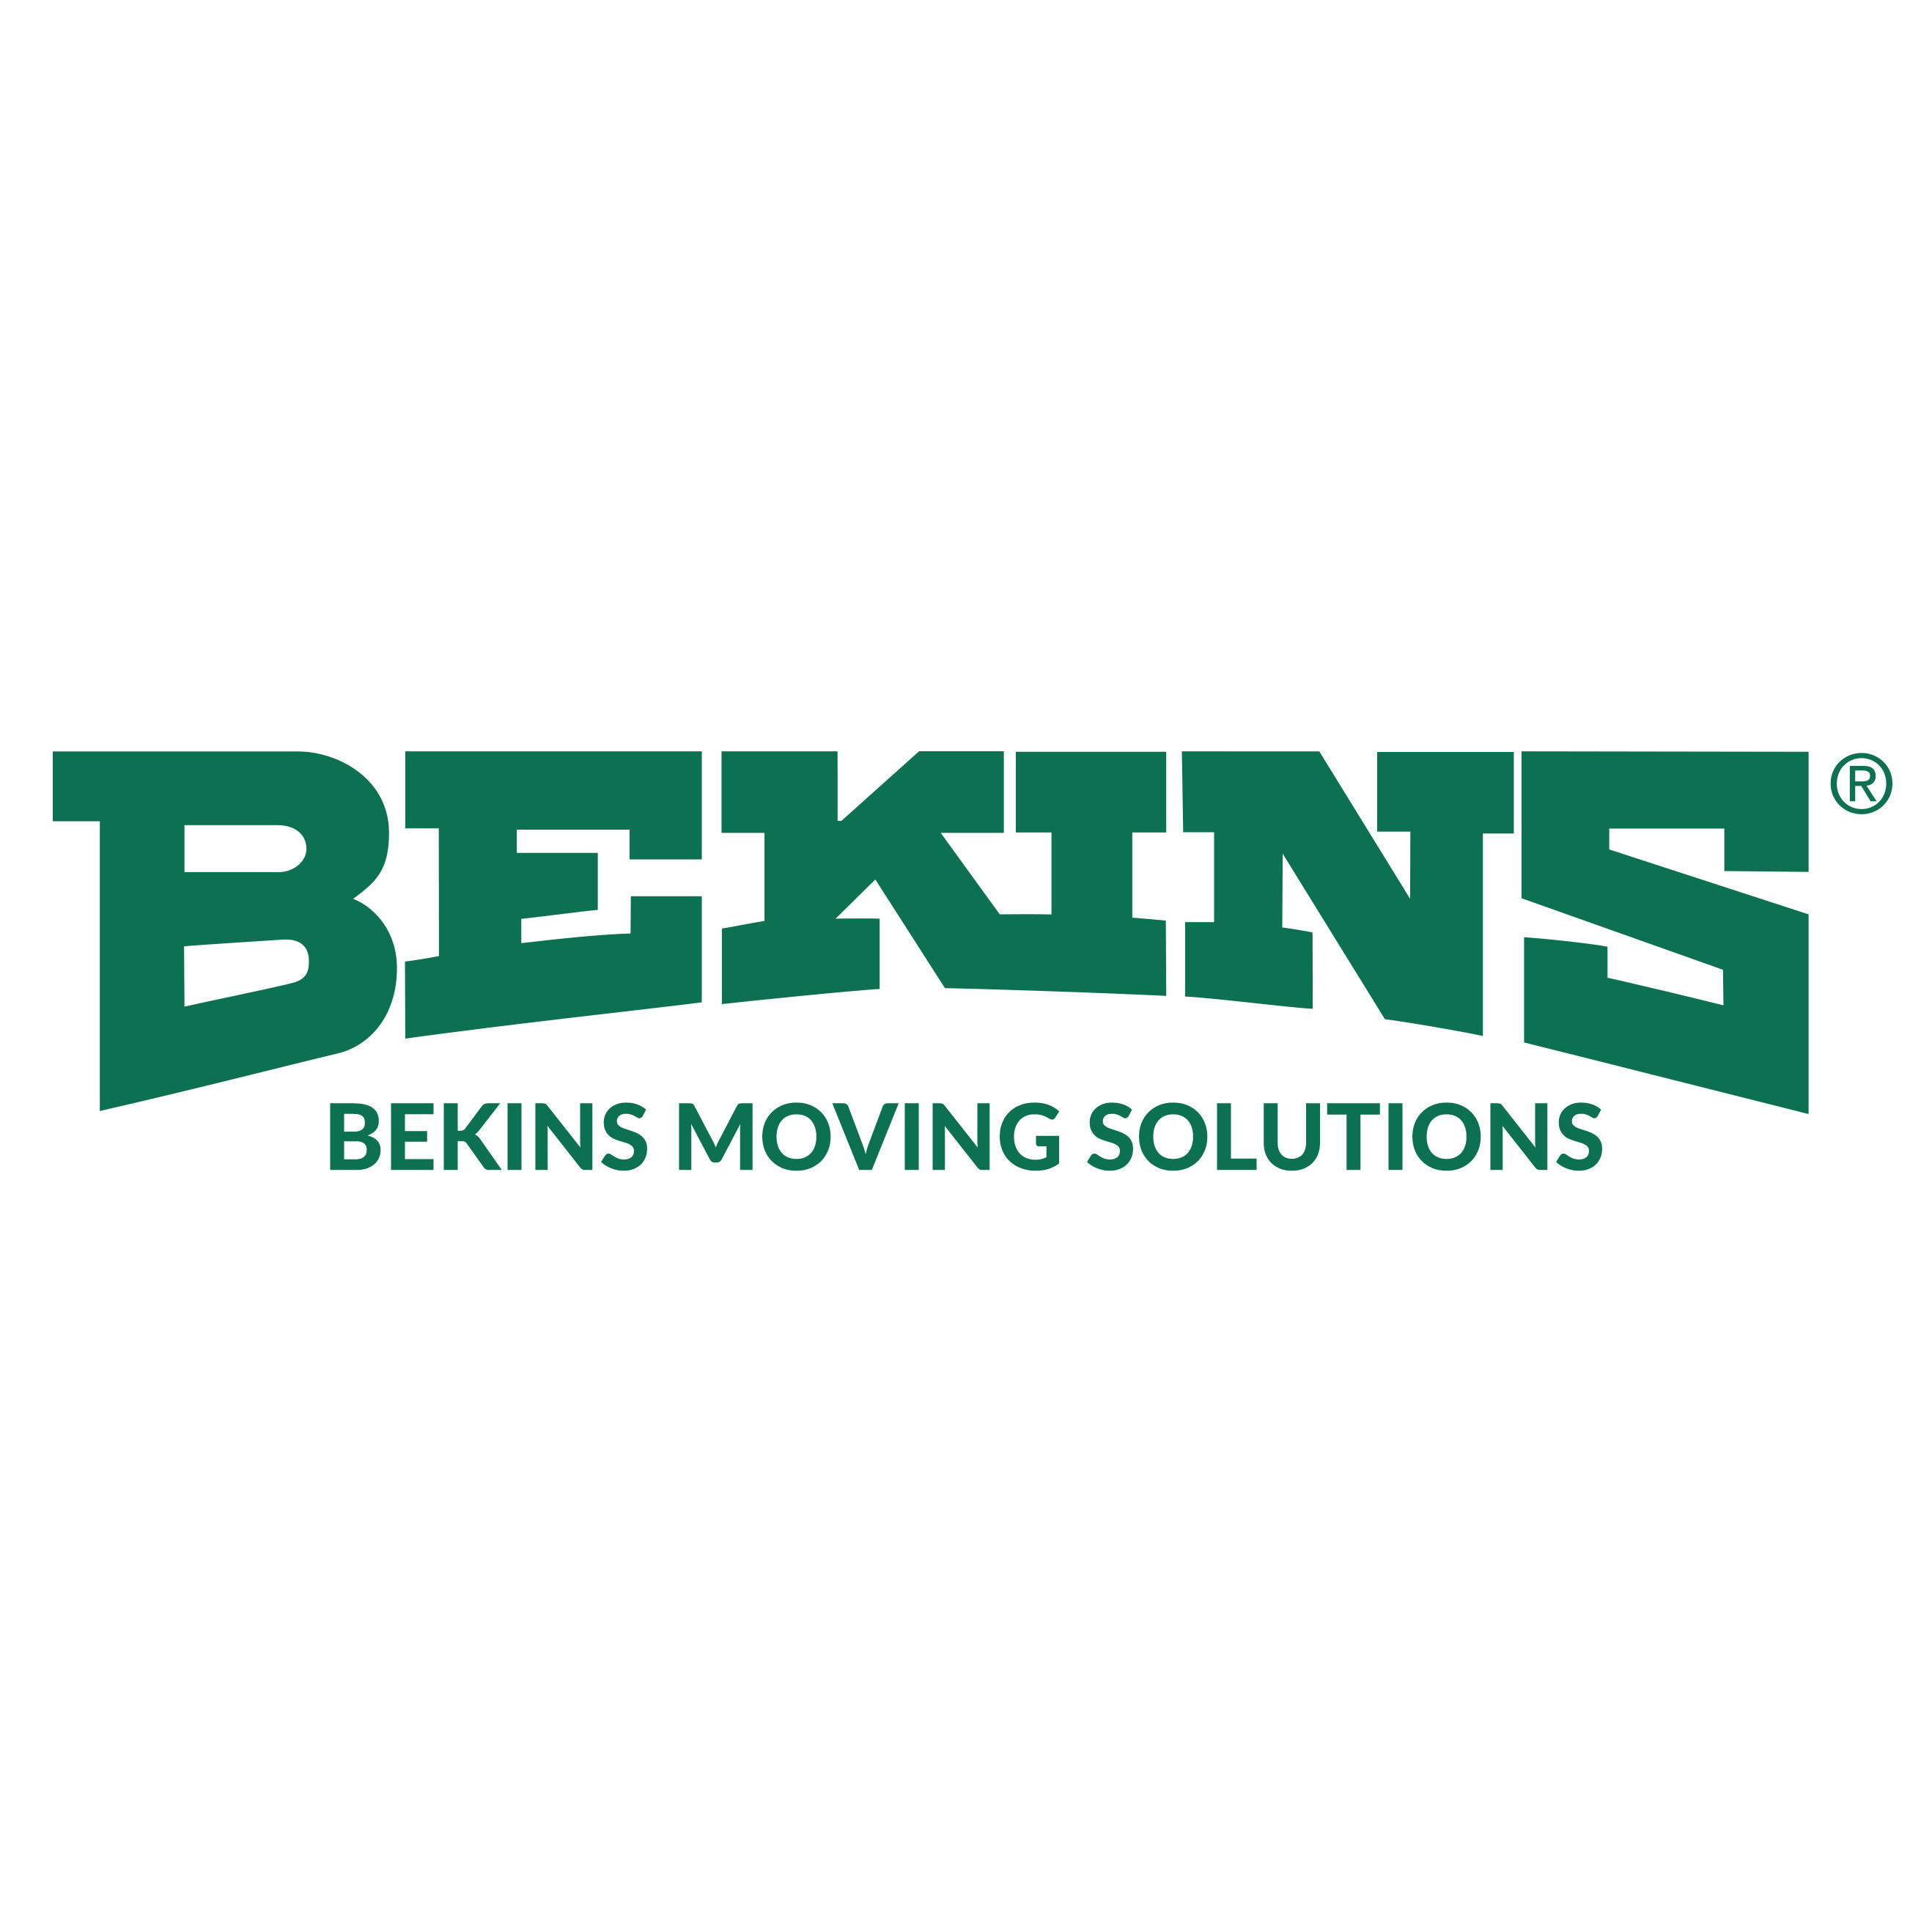 Bekins Moving Solutions image 4